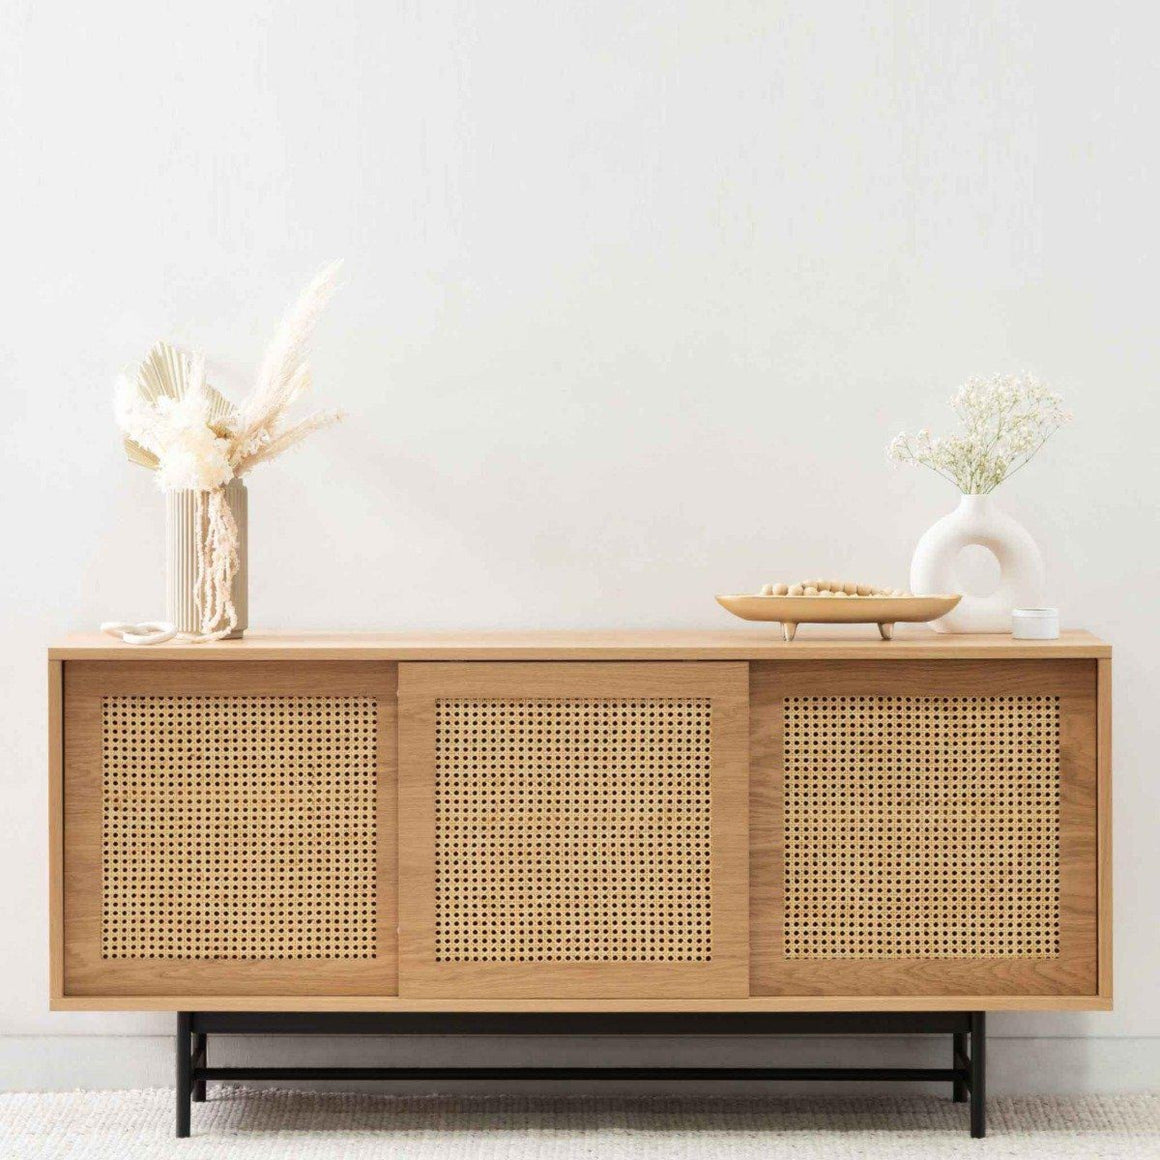 Debora Rattan Sideboard - Natural SAVA & CO